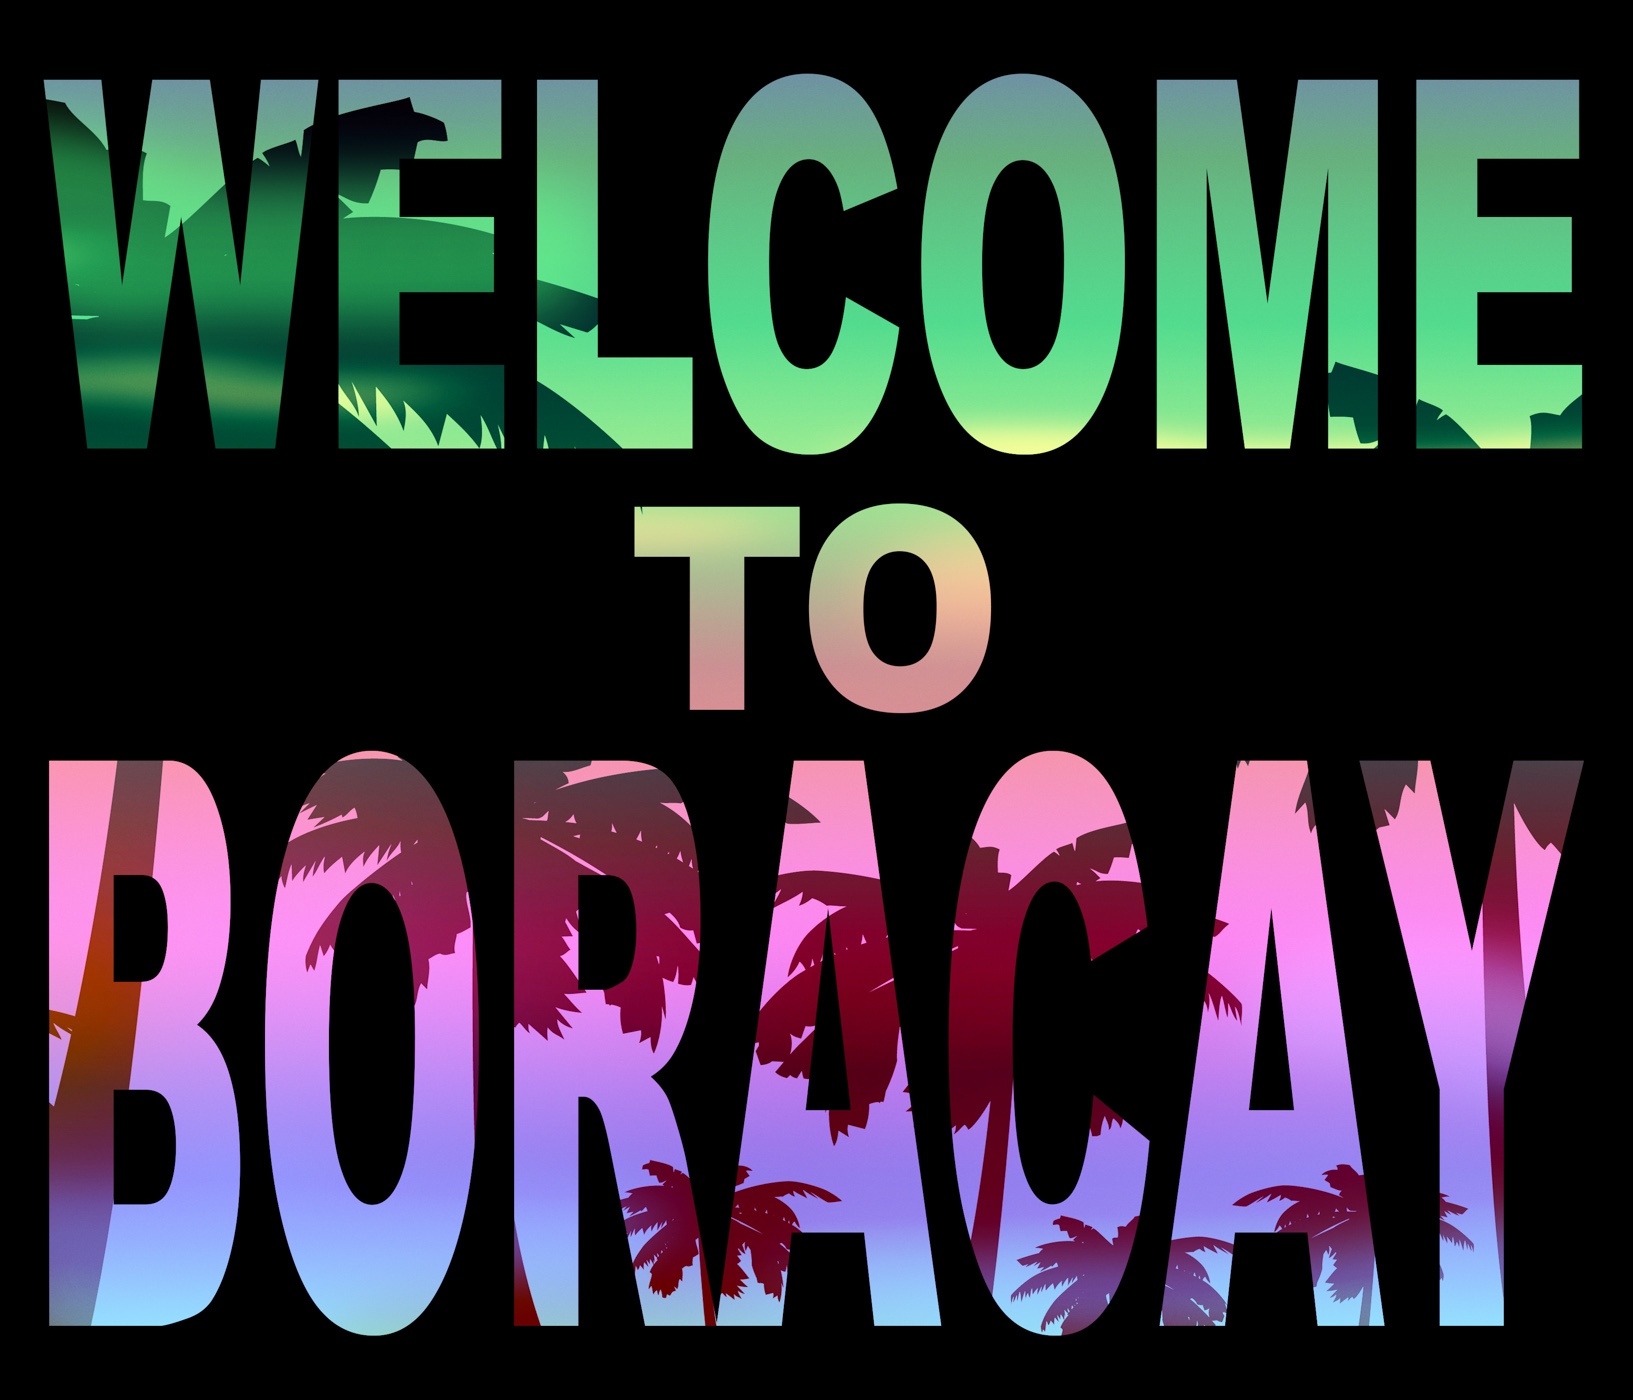 Welcome to boracay means beach vacations and hello photo